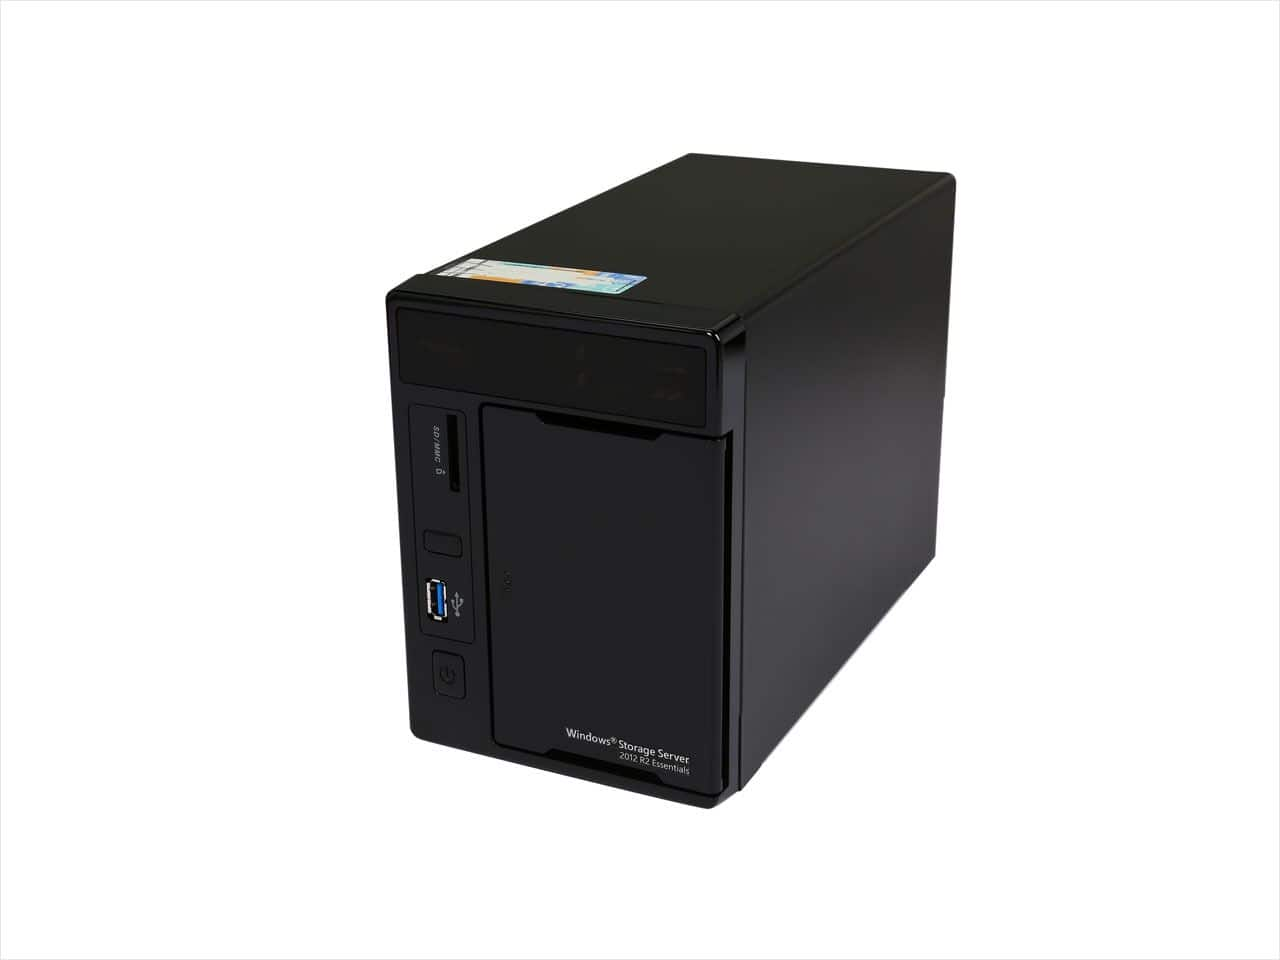 Thecus W2000 2-Bay Cloud Ready Windows Server R2 $99 shipped Newegg flash